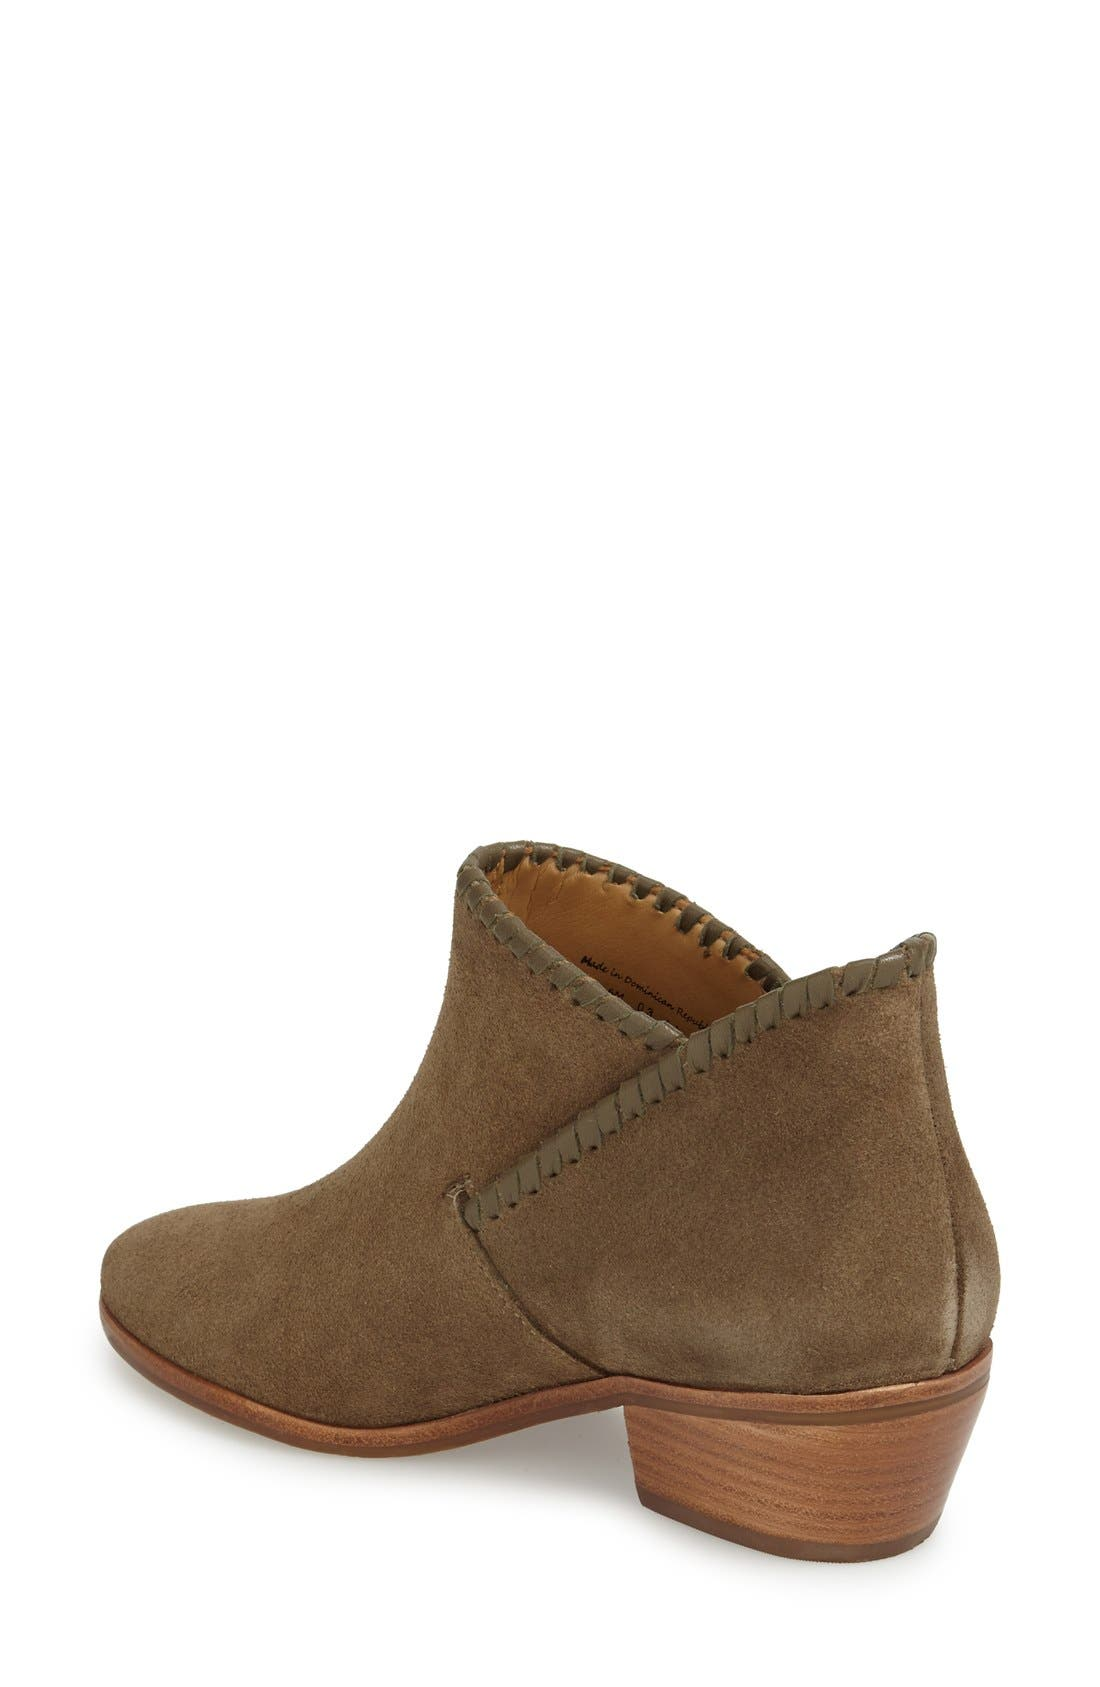 'Sadie' Bootie,                             Alternate thumbnail 2, color,                             Olive Suede